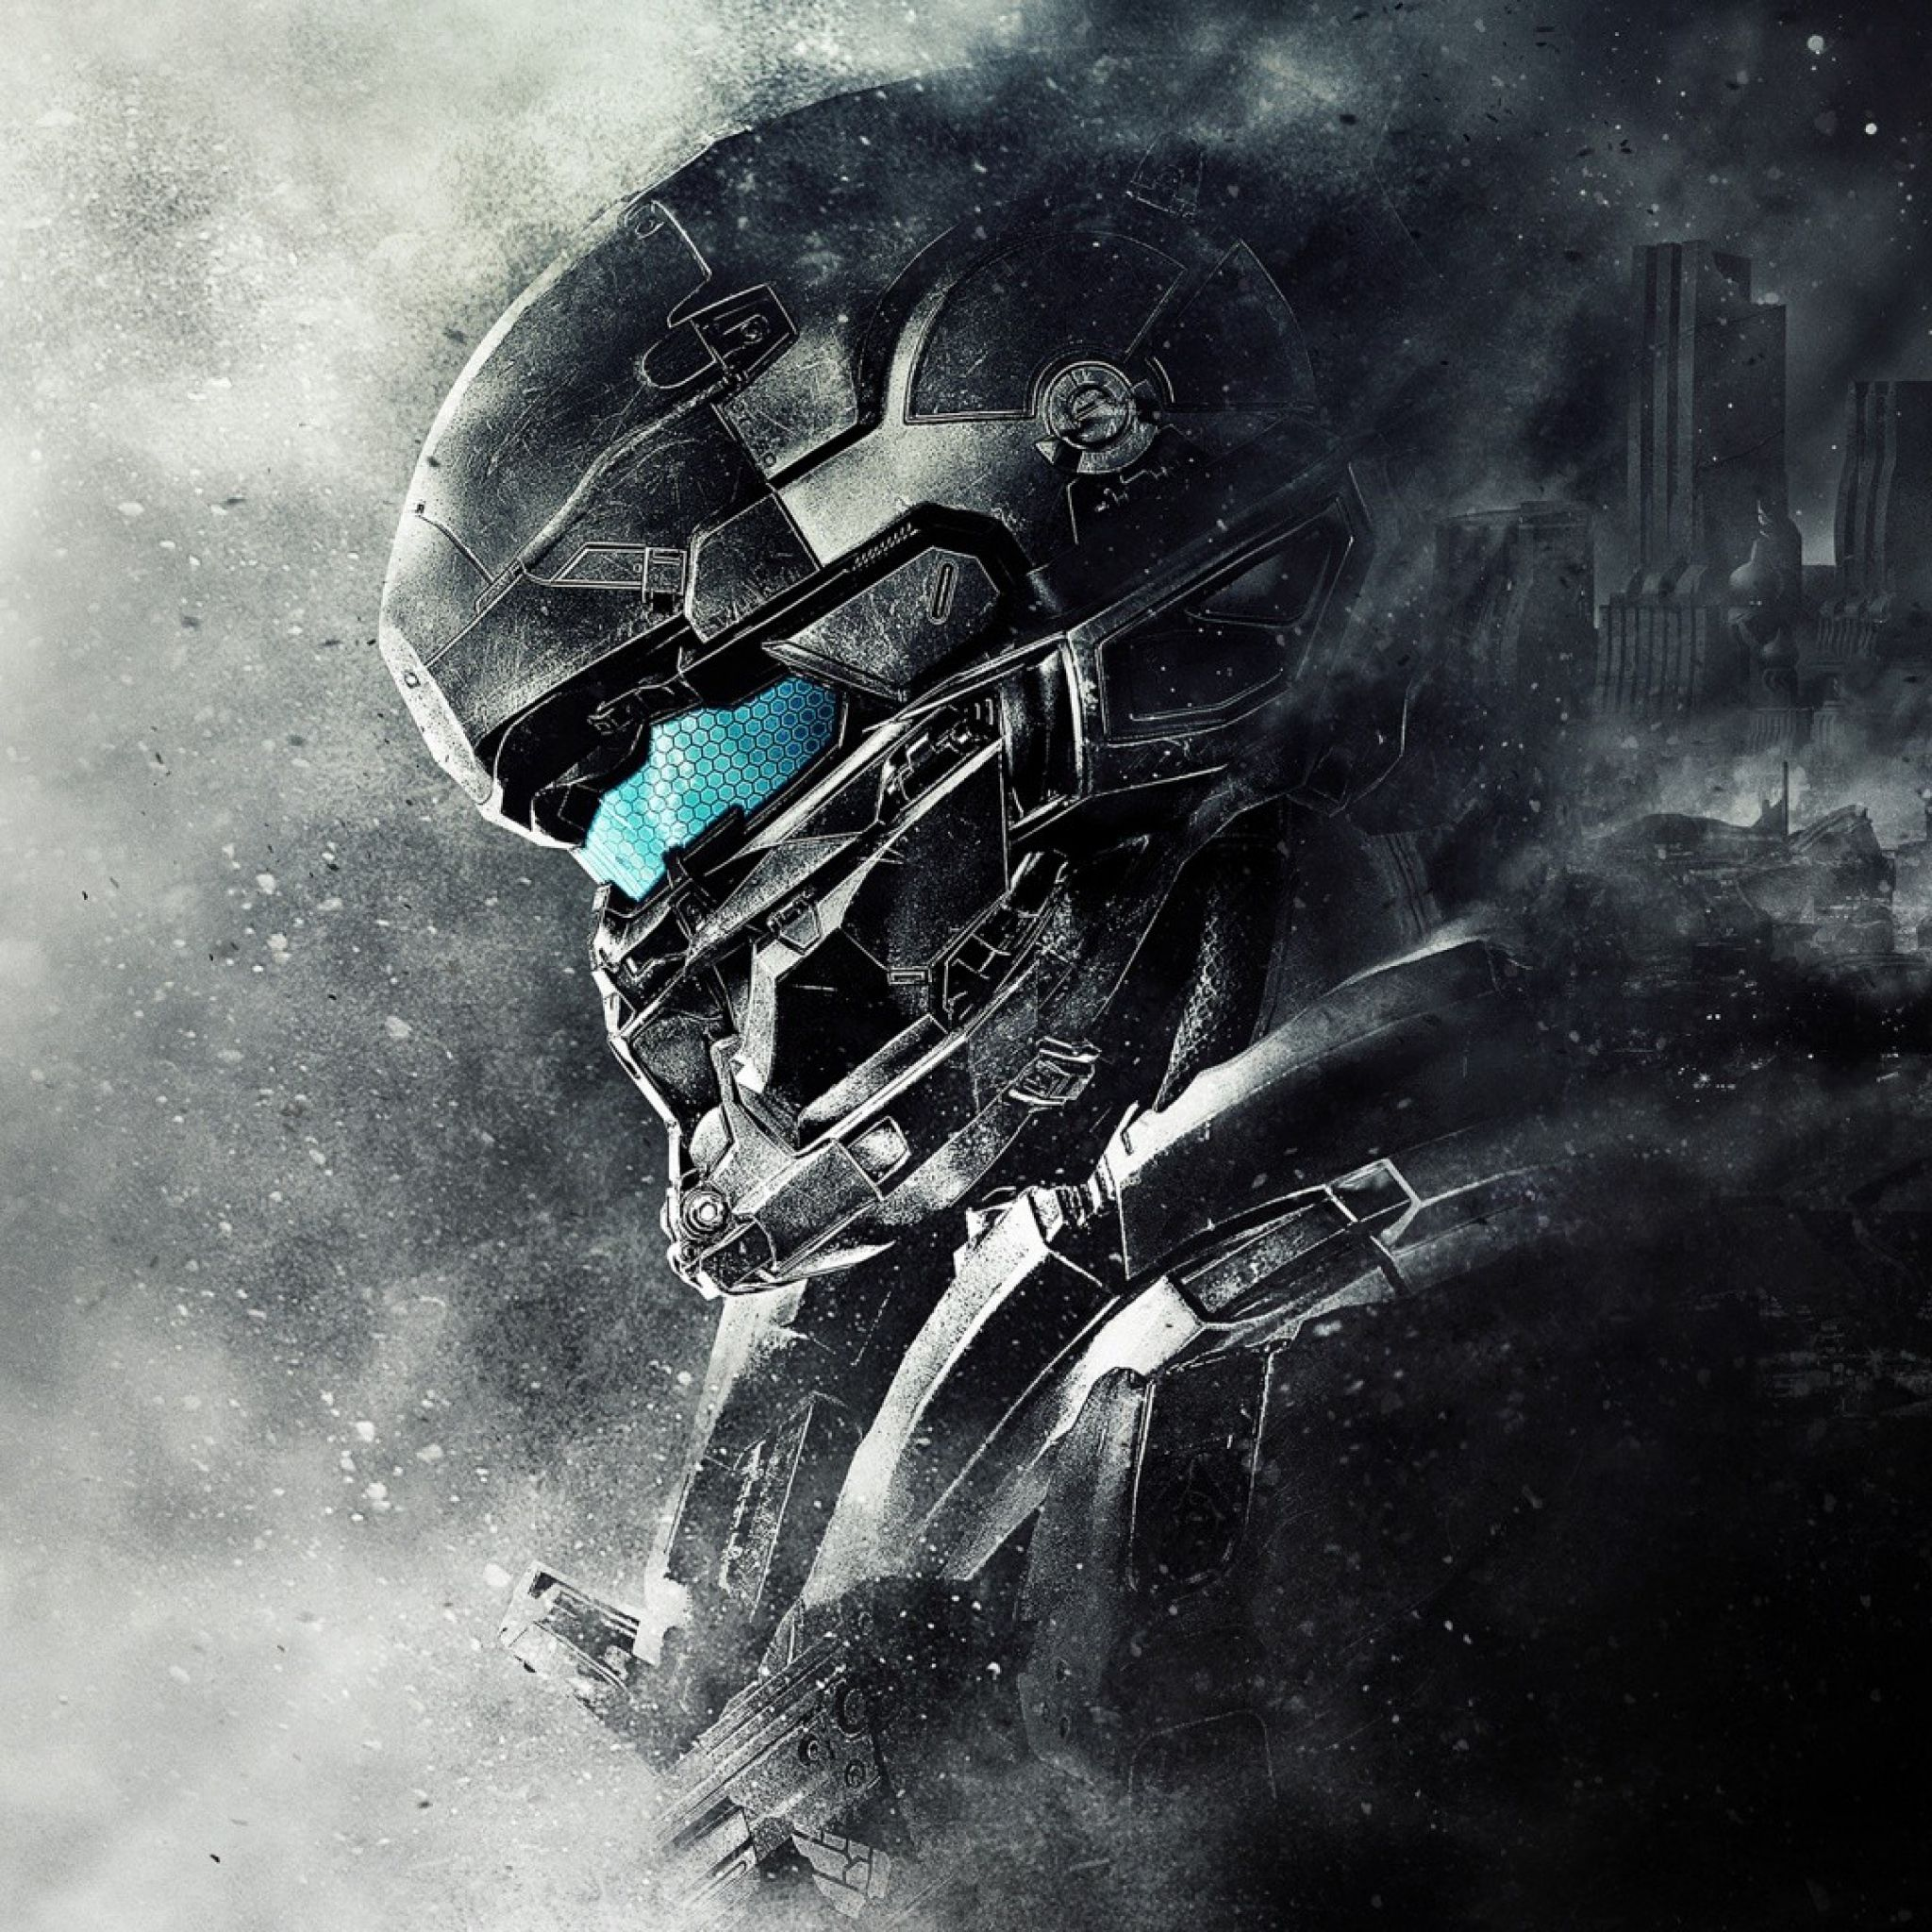 Halo Iphone Wallpapers Top Free Halo Iphone Backgrounds Wallpaperaccess In 2021 Halo Wallpapers Halo Master Chief Master Chief Wallpapers